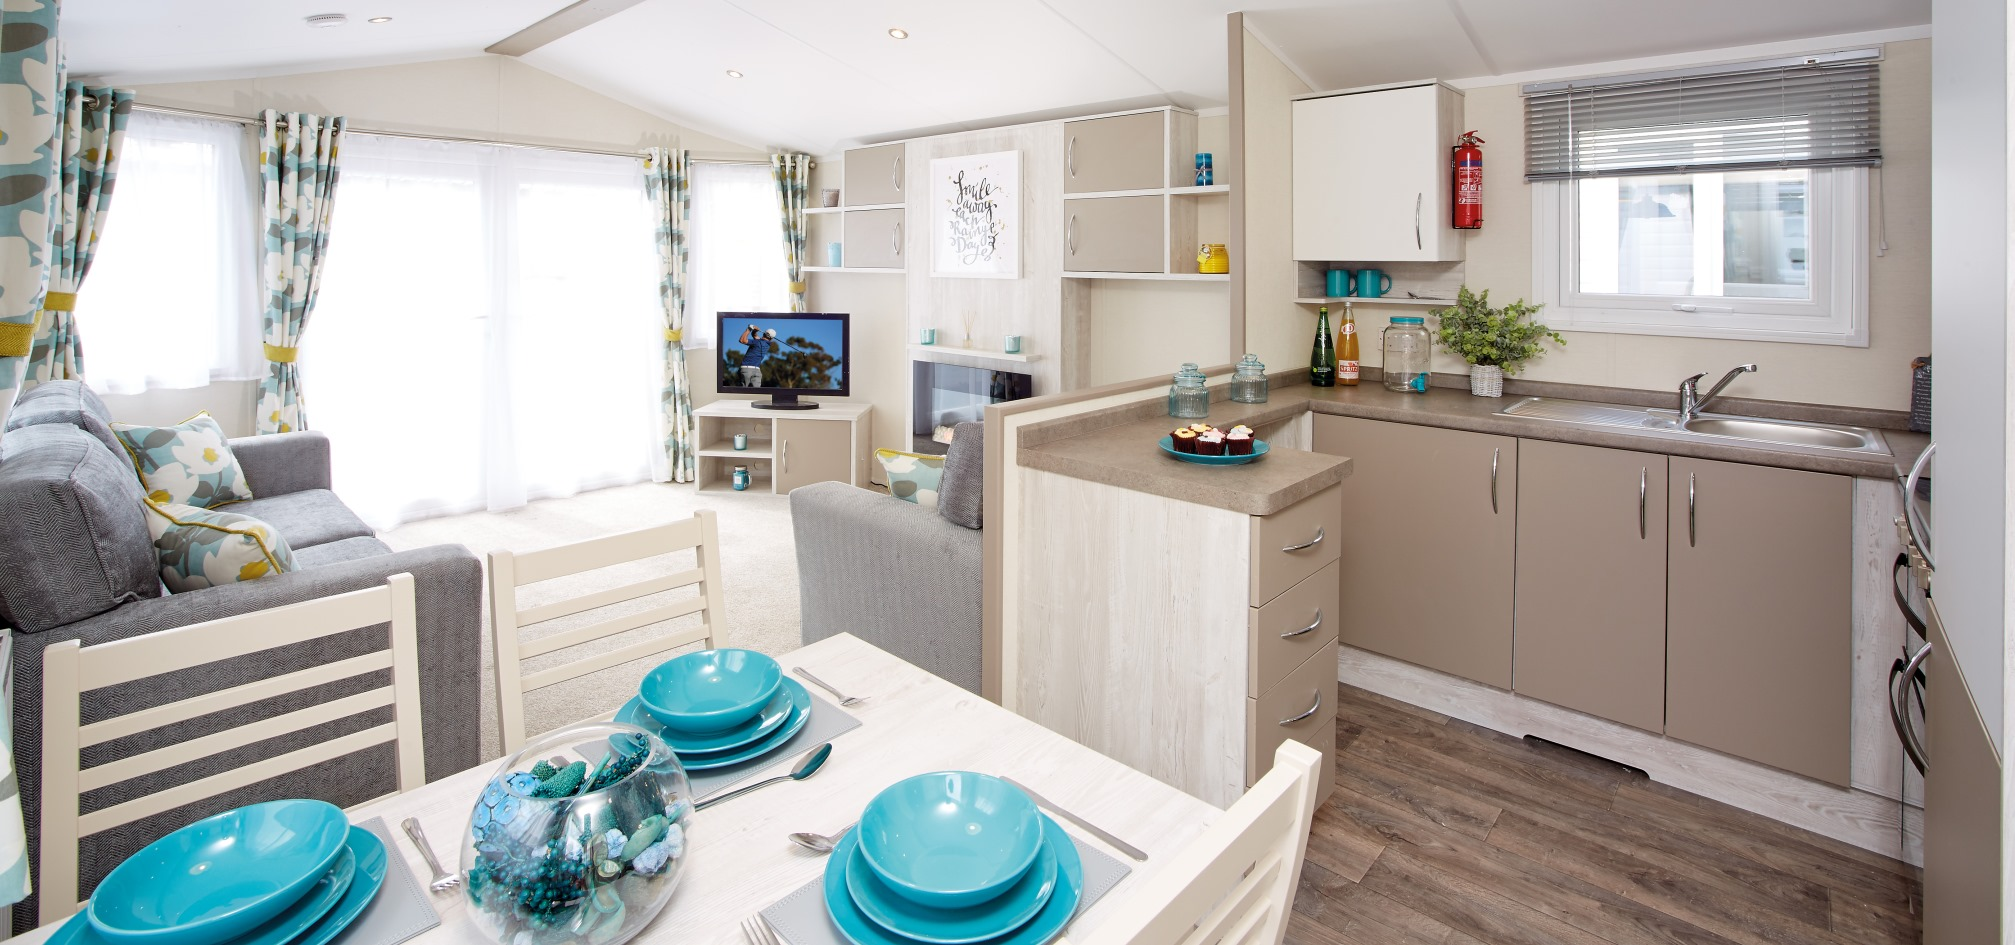 wide angle view of a holiday home looking towards the living room from the dining table, with the kitchen on the right hand side.